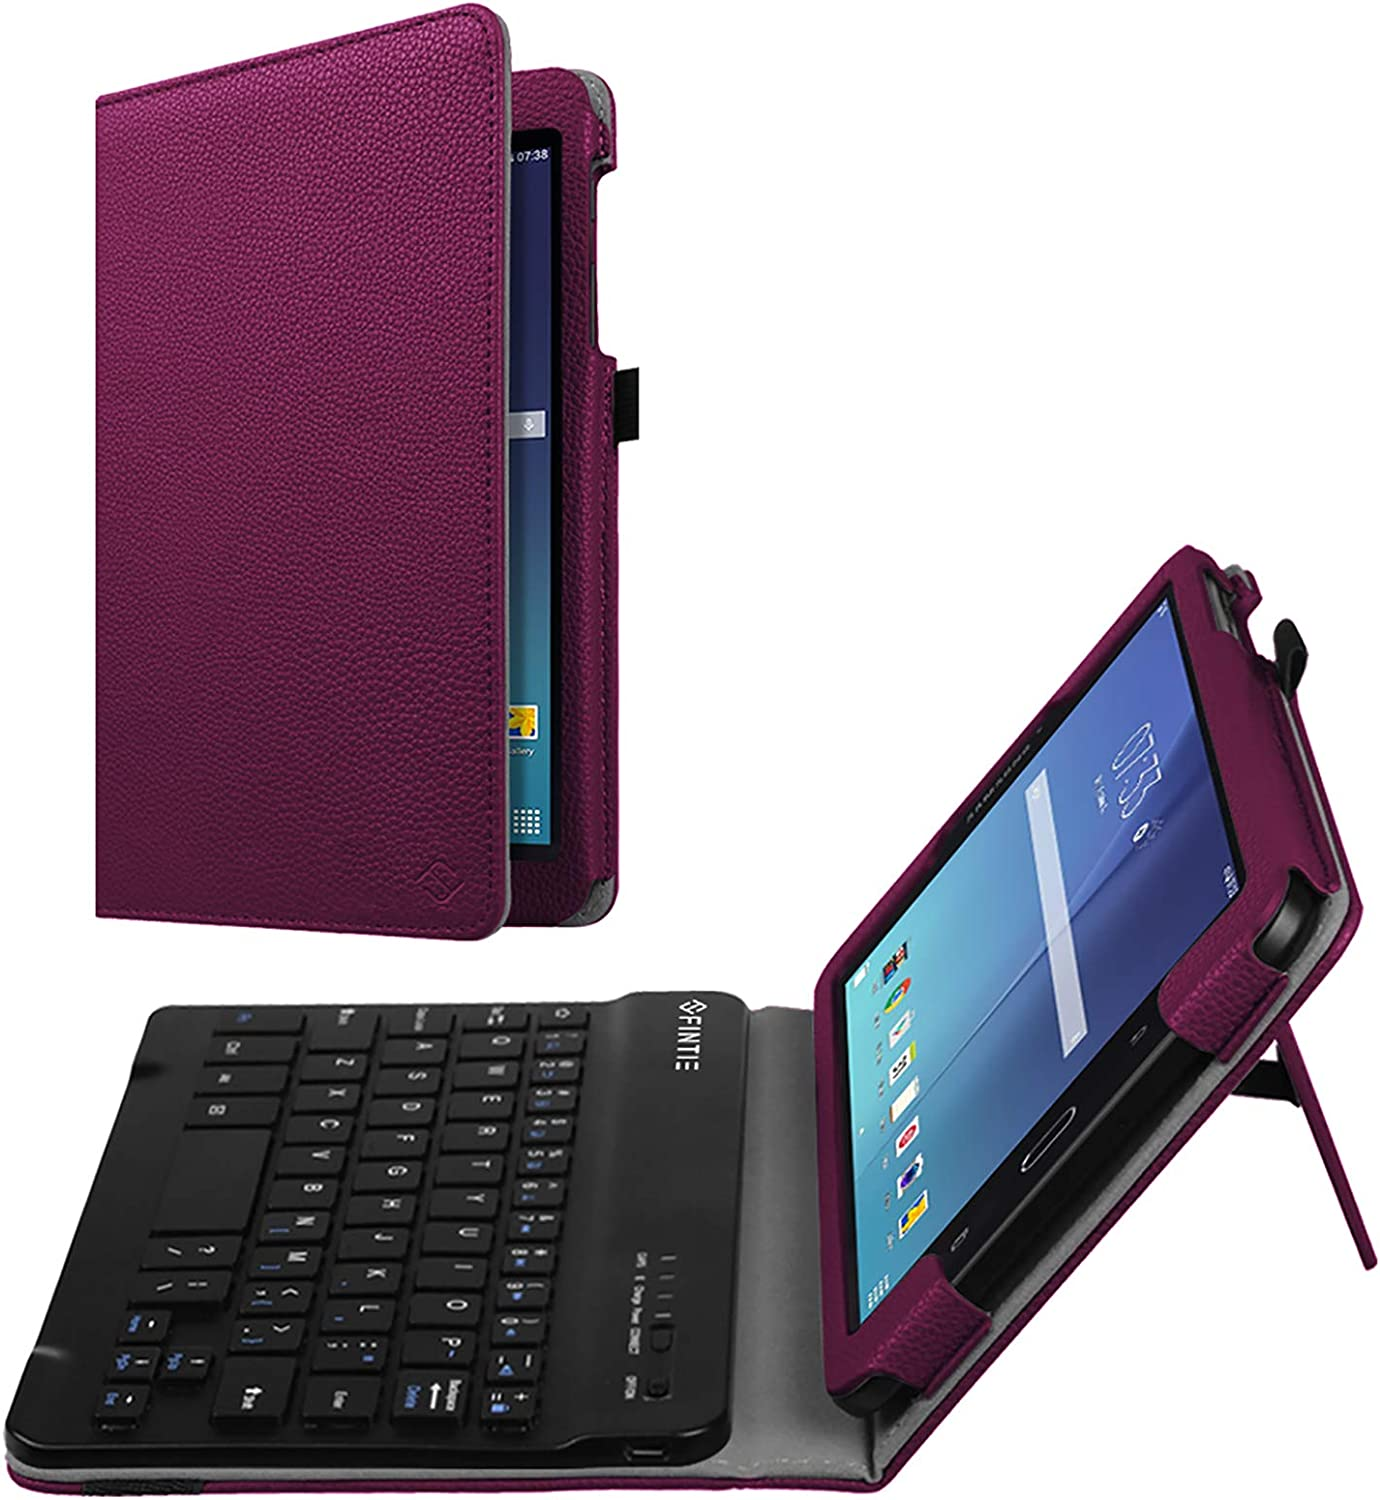 Fintie Keyboard Case for Samsung Galaxy Tab E 8.0, Slim Fit Folio PU Leather Case with Detachable Magnetical Bluetooth Keyboard for Galaxy Tab E 32GB SM-T378/Tab E 8.0 SM-T375/T377, Purple